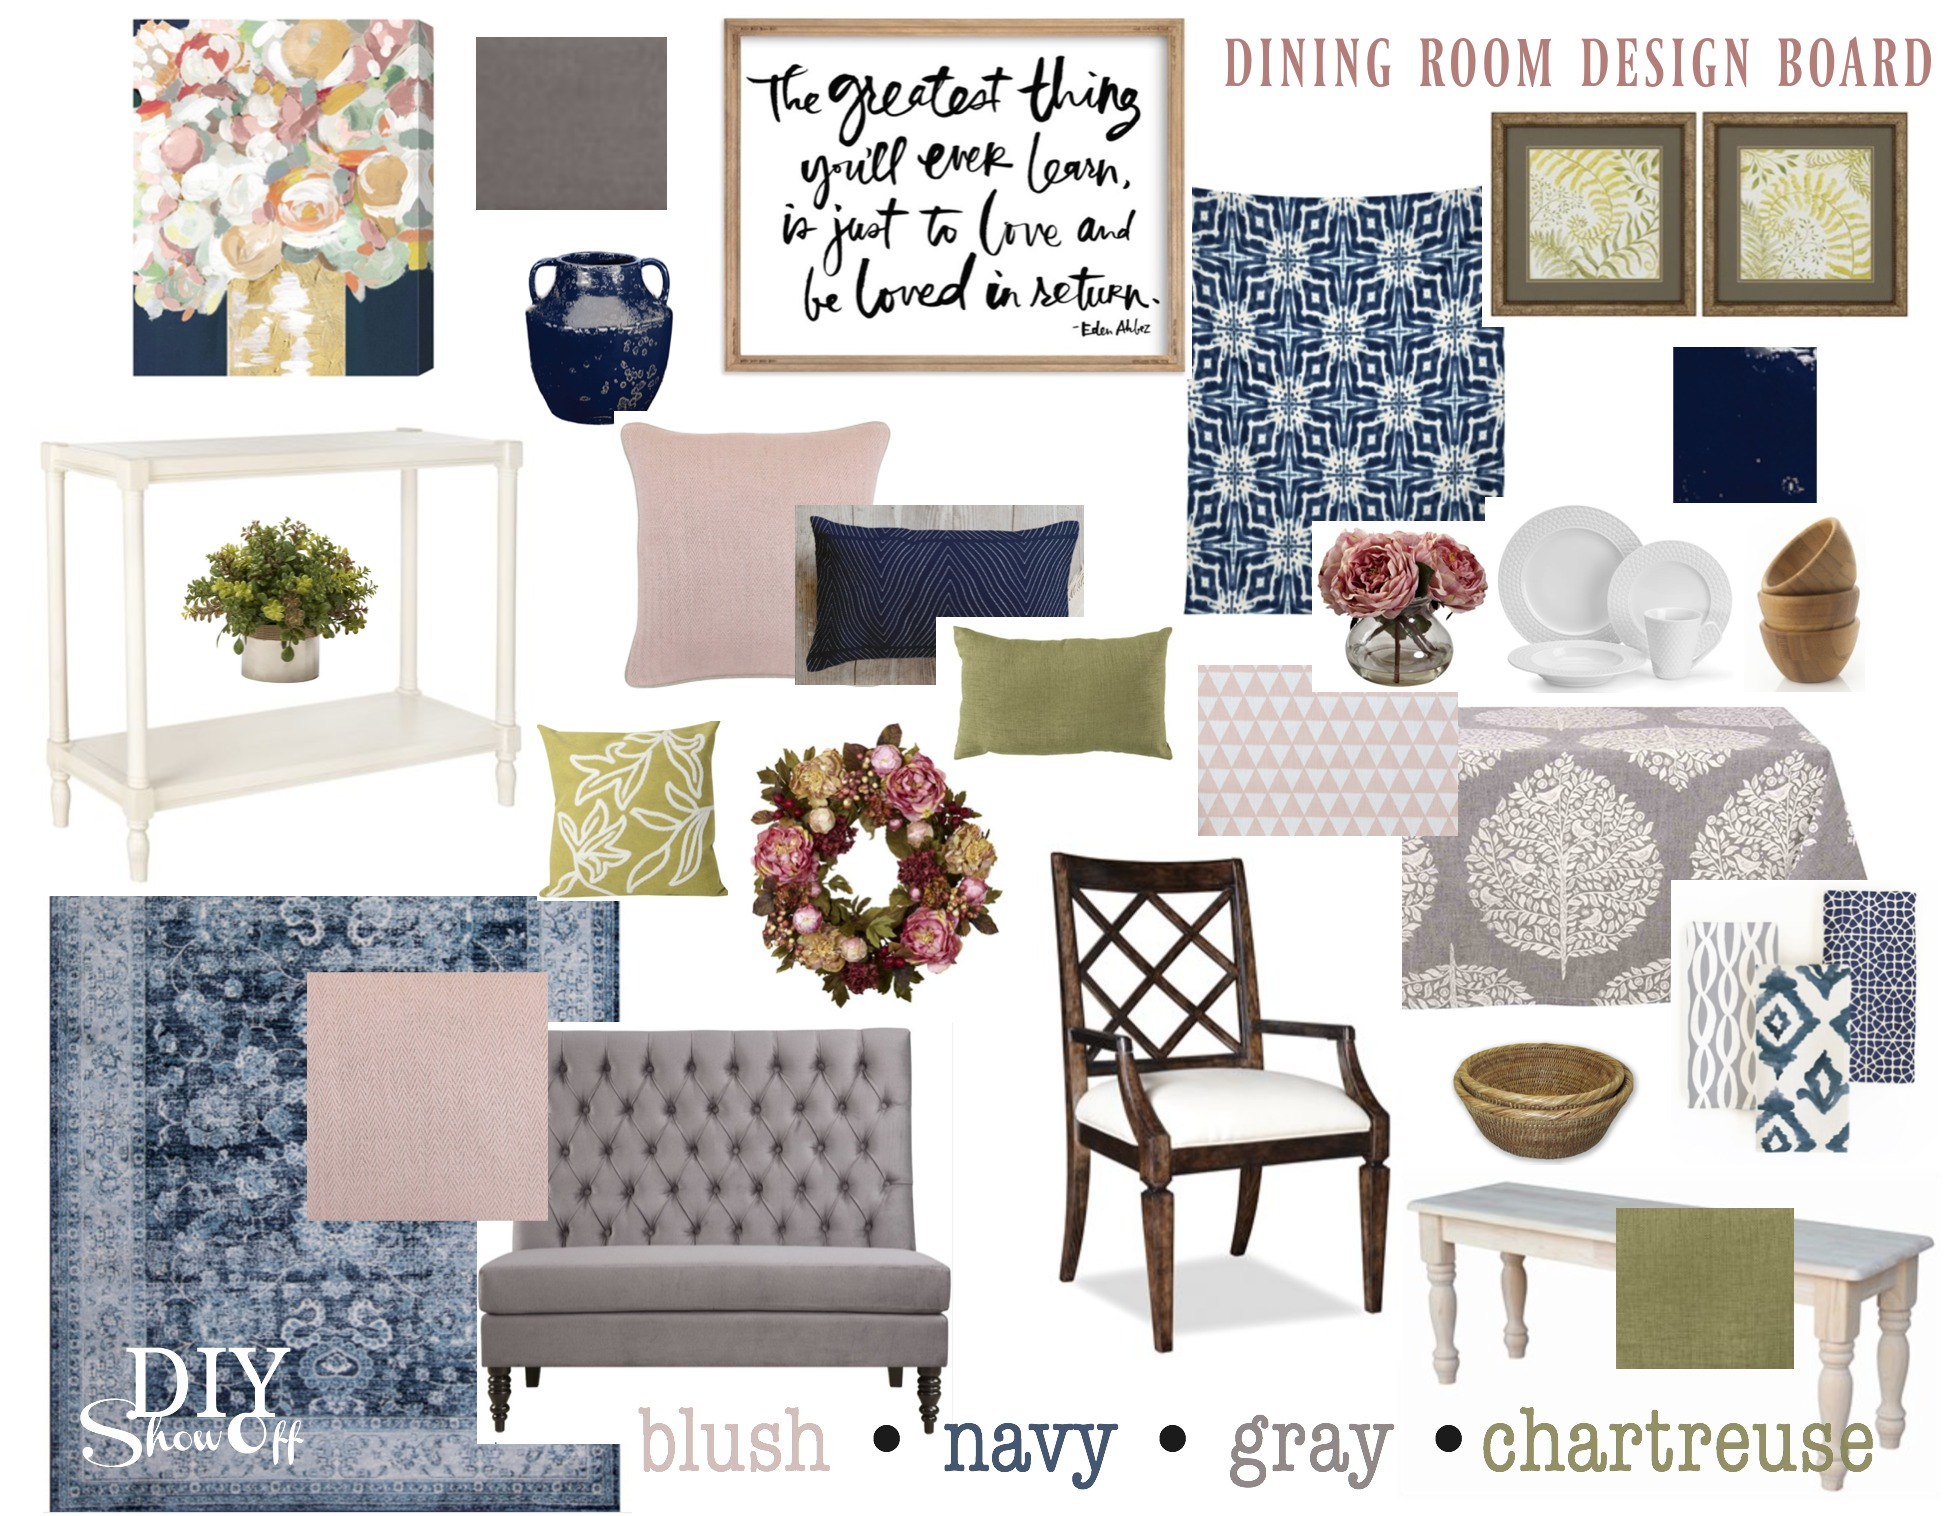 Color Lovers series! @diyshowoff dining room design board: navy, blush, chartreuse and gray